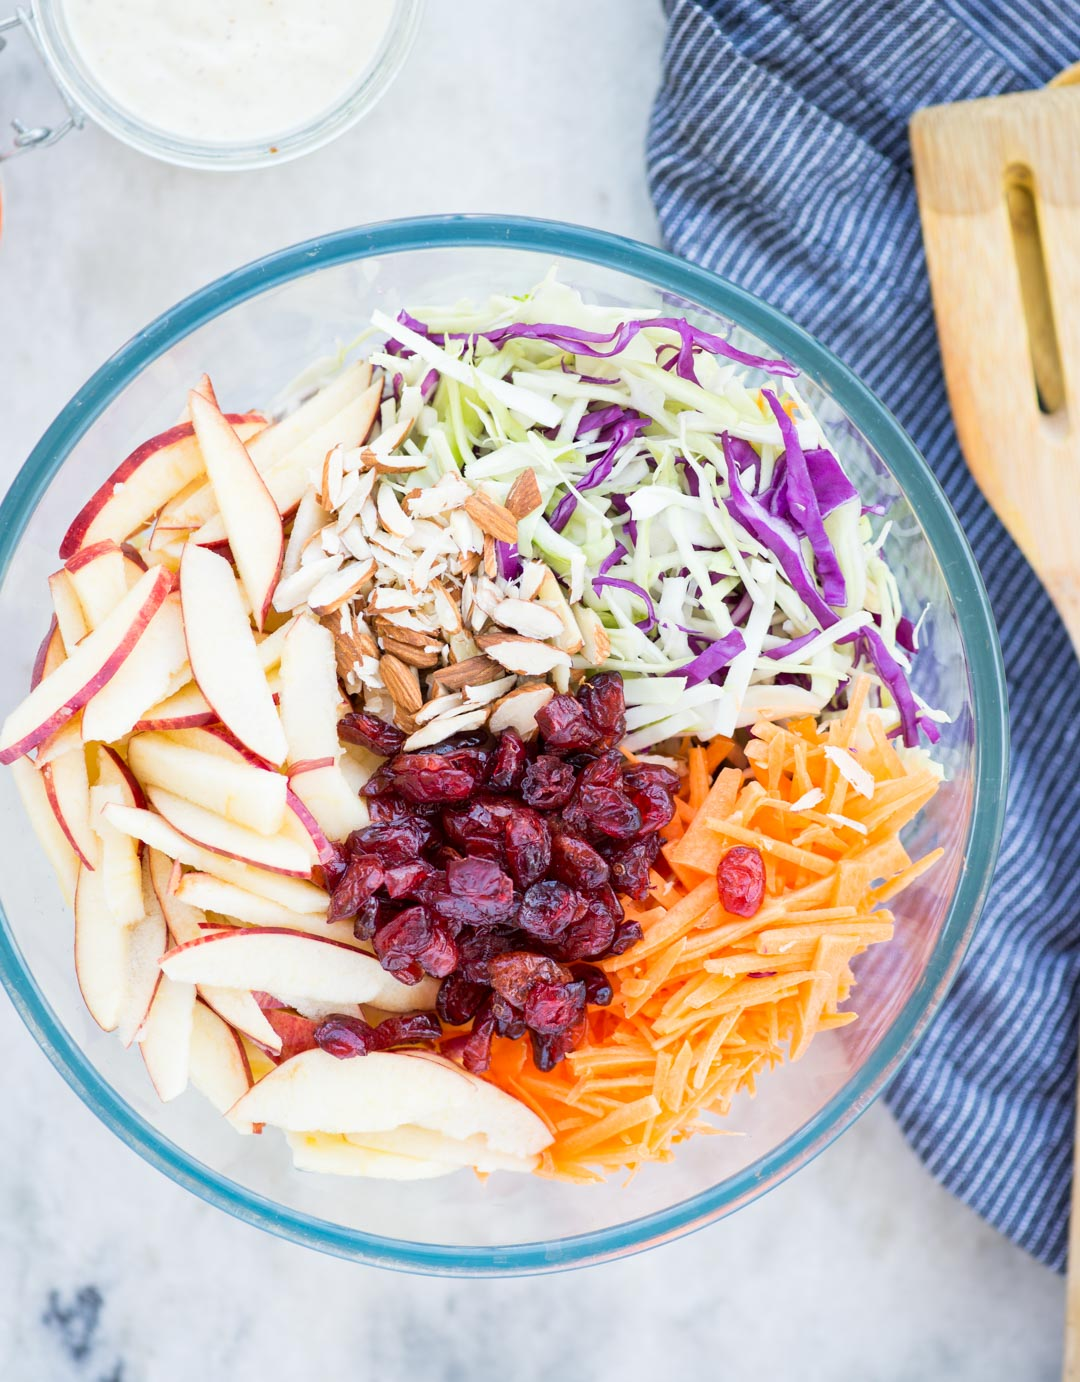 Crunchy apples, Cabbage, carrot, Tart Cranberries in a creamy dressing, this Apple Coleslaw or Apple Slaw is healthyand easy to make. A perfect side dish to serve and can be made in just 10 minutes.